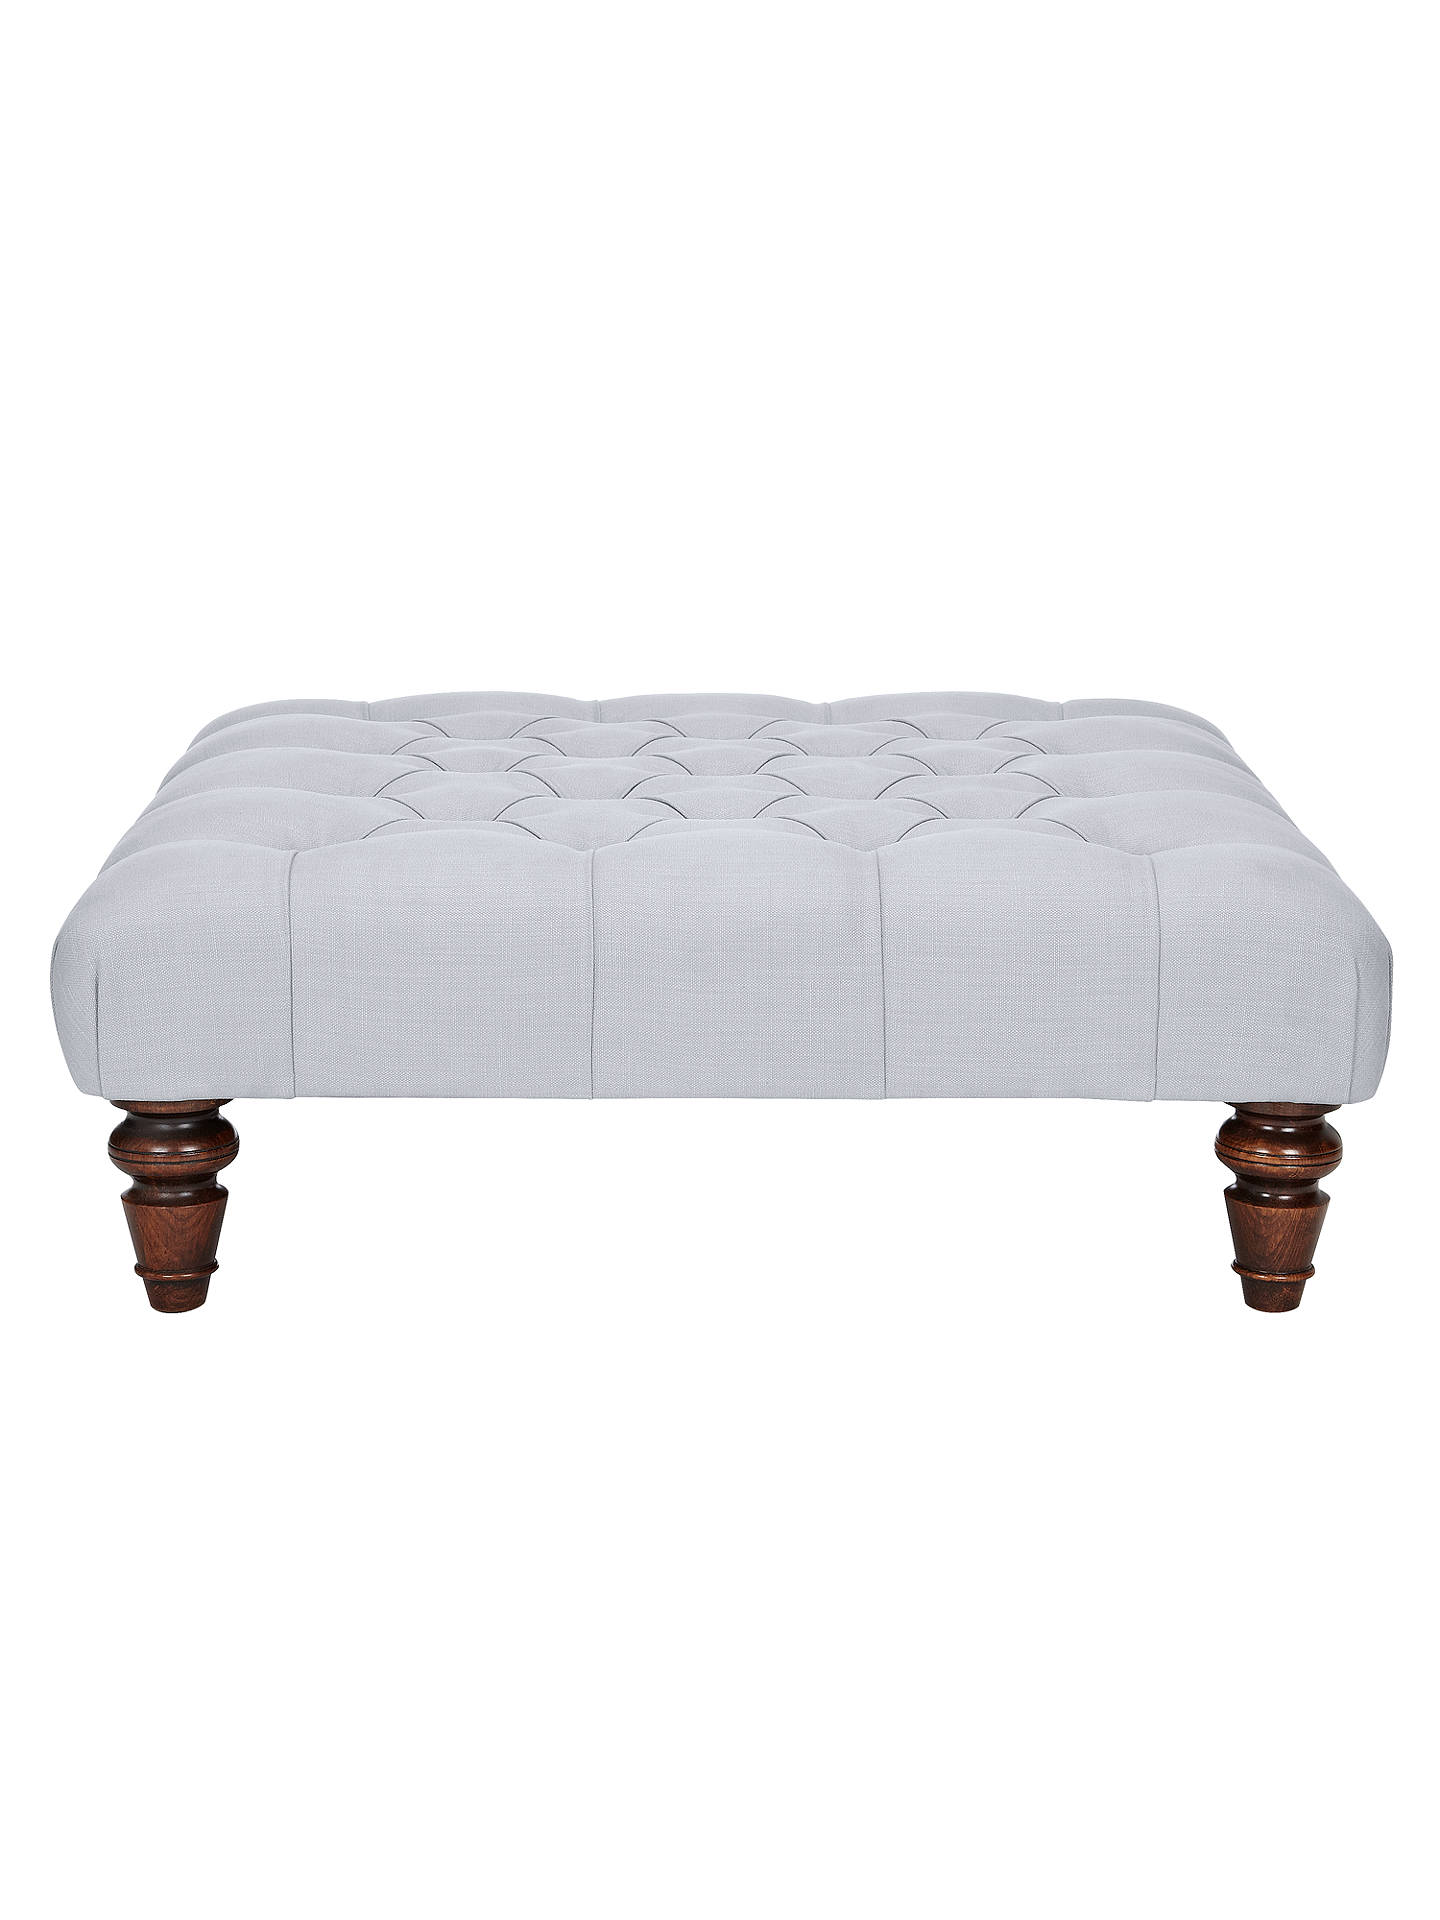 Buy John Lewis Stanford Semi-Aniline Footstool, Hand Antiqued Online at johnlewis.com